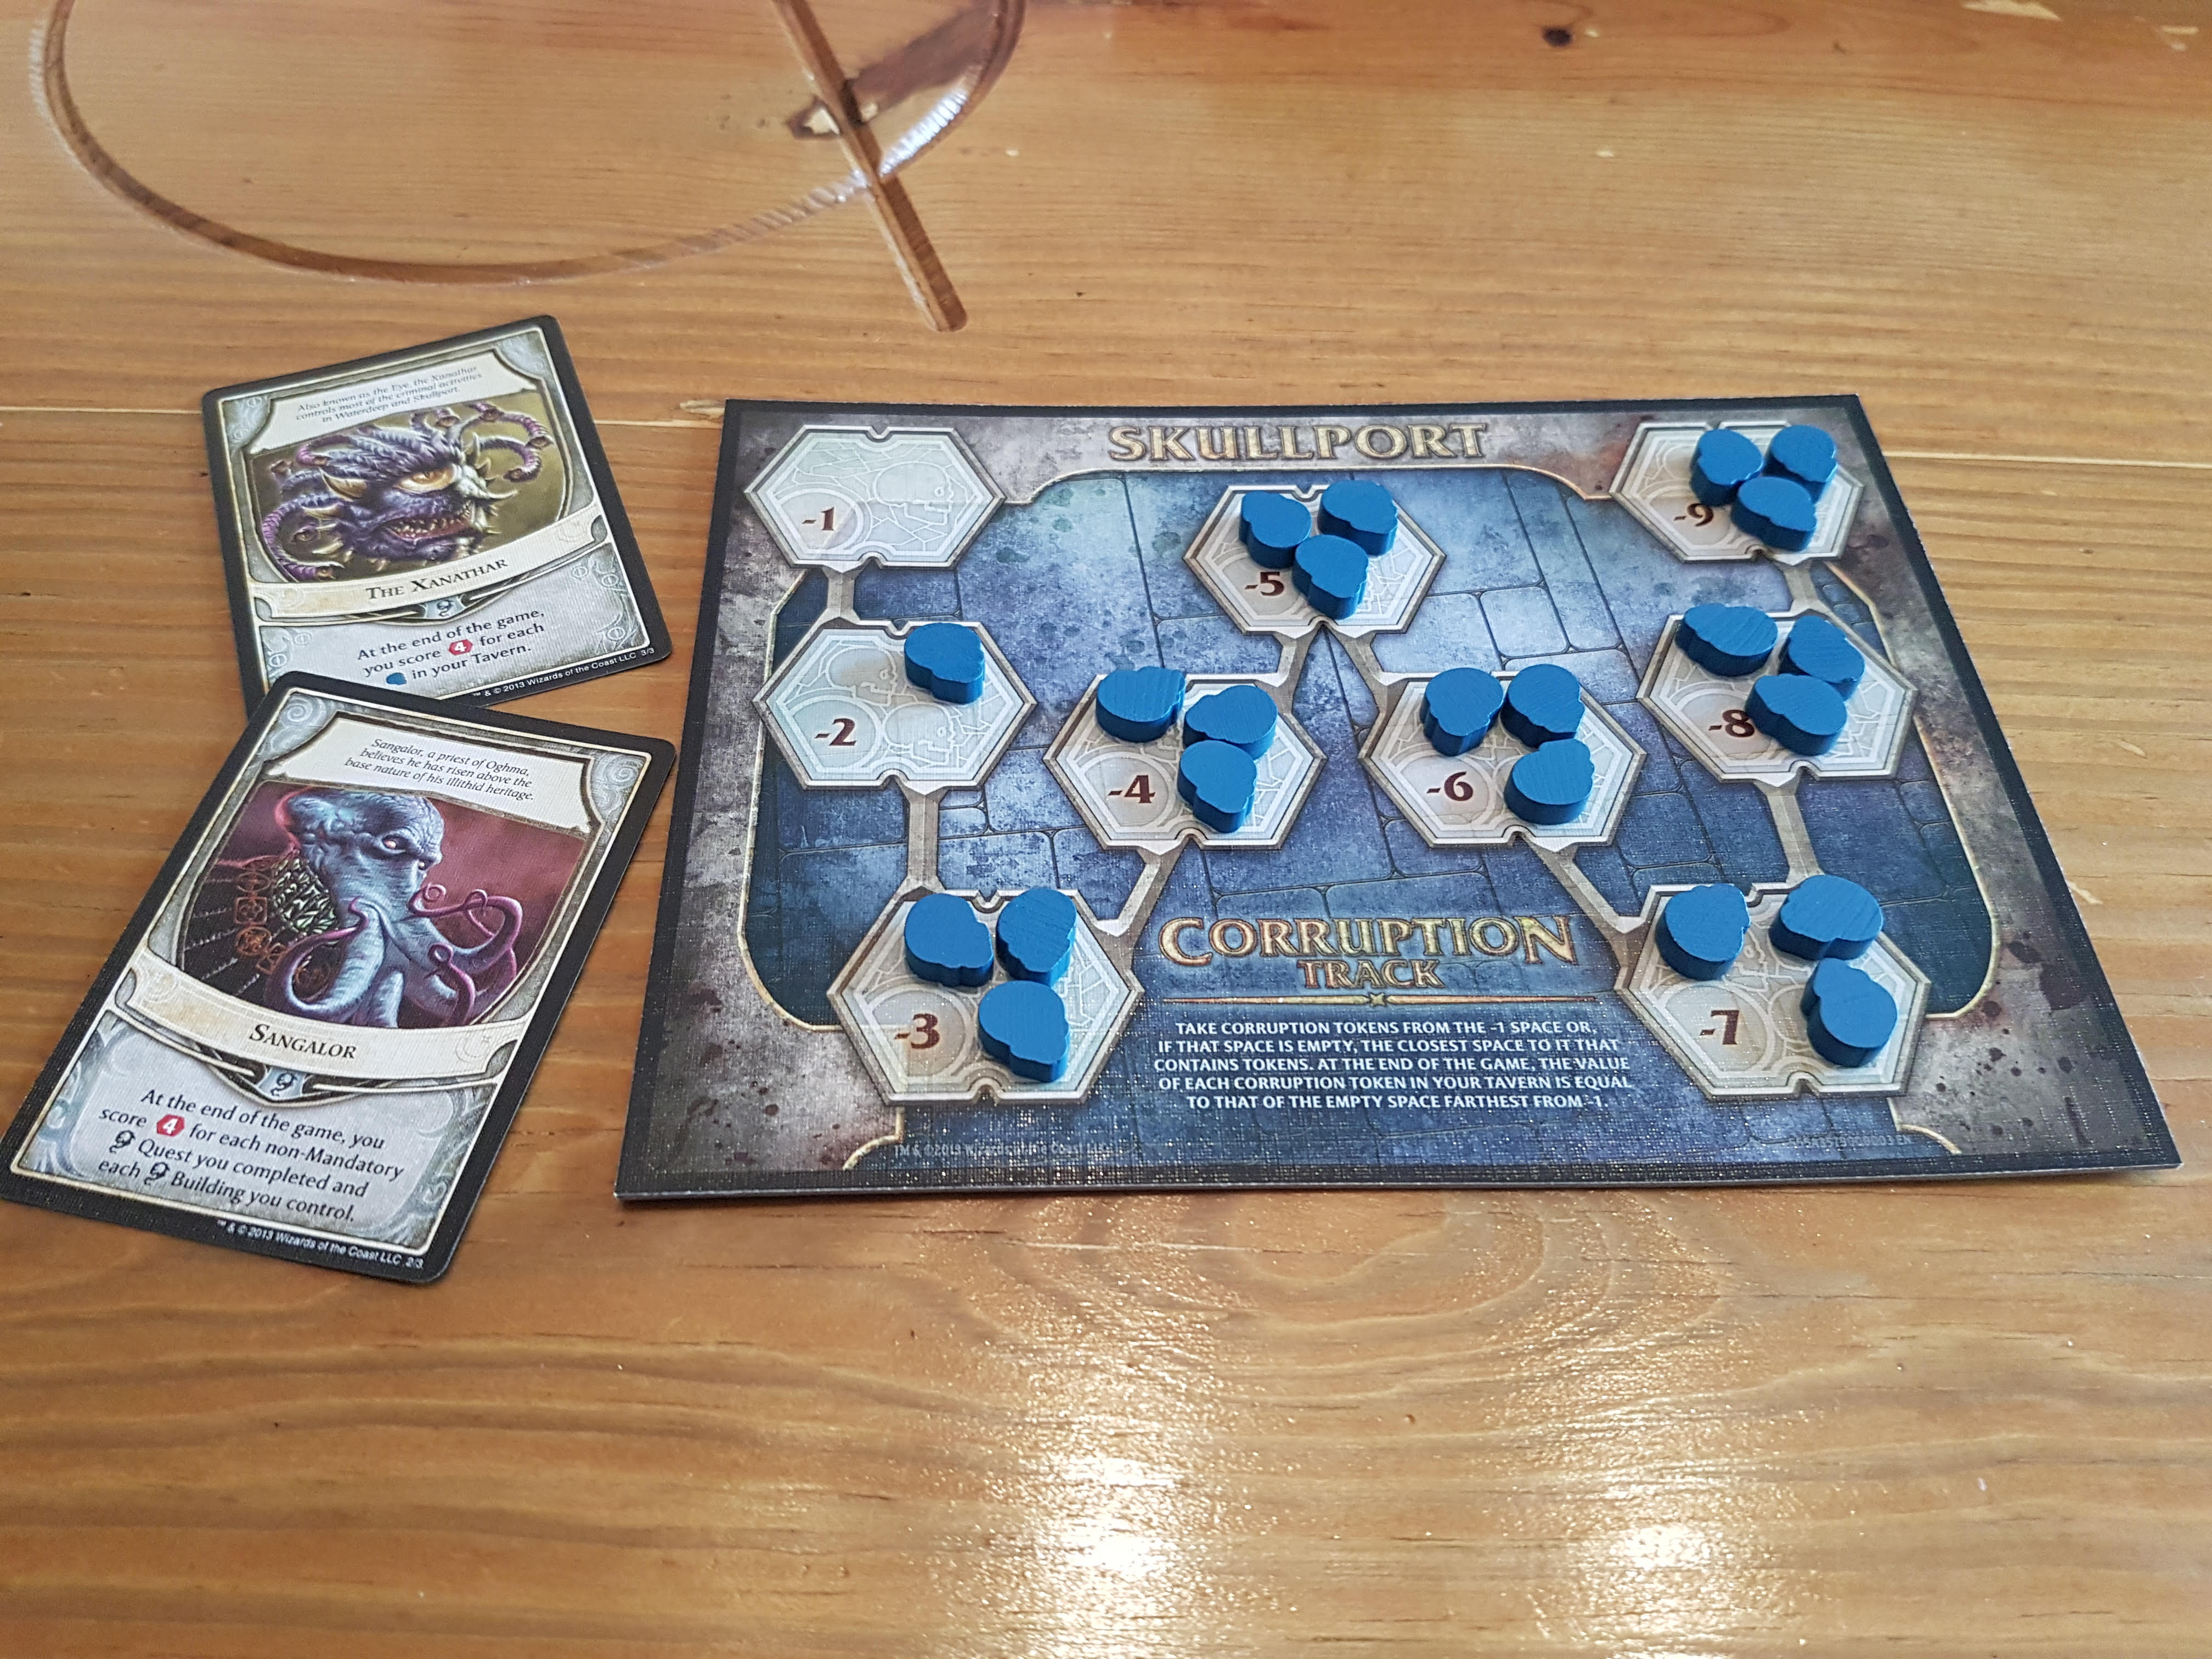 Lords of Waterdeep: Scoundrels of Skullport Review - Just Push Start